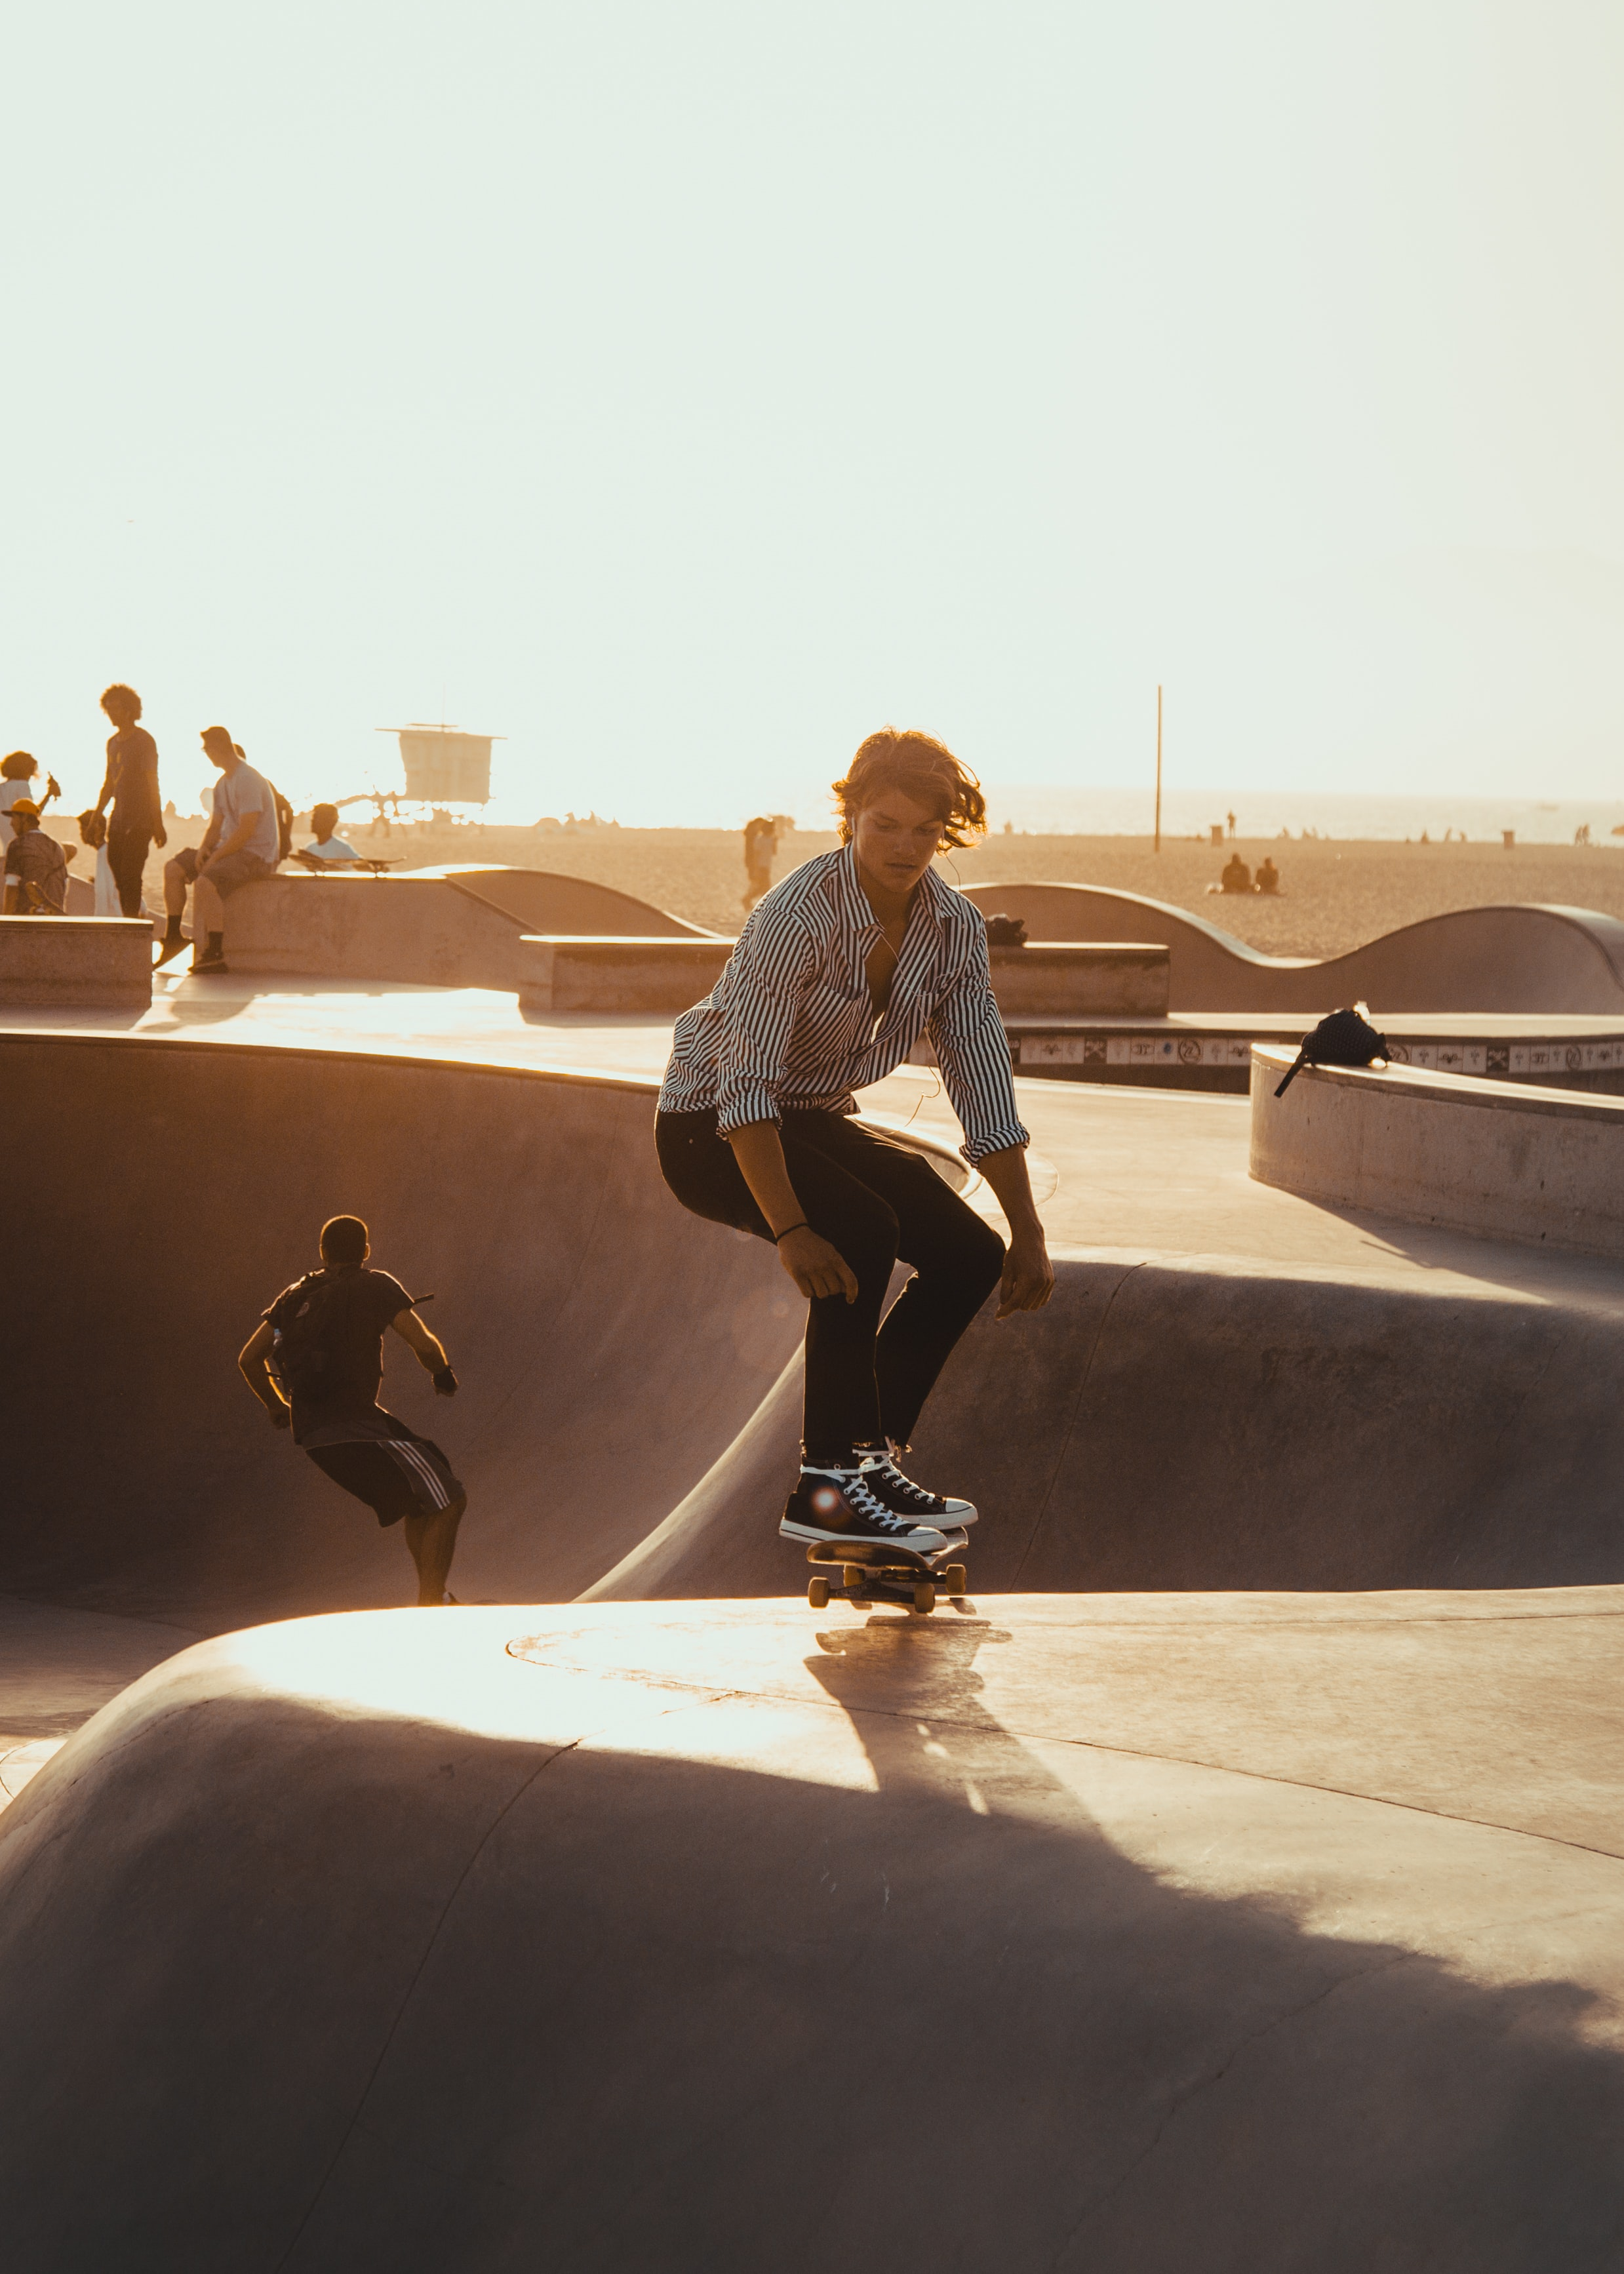 man riding skateboard on skate park during daytime